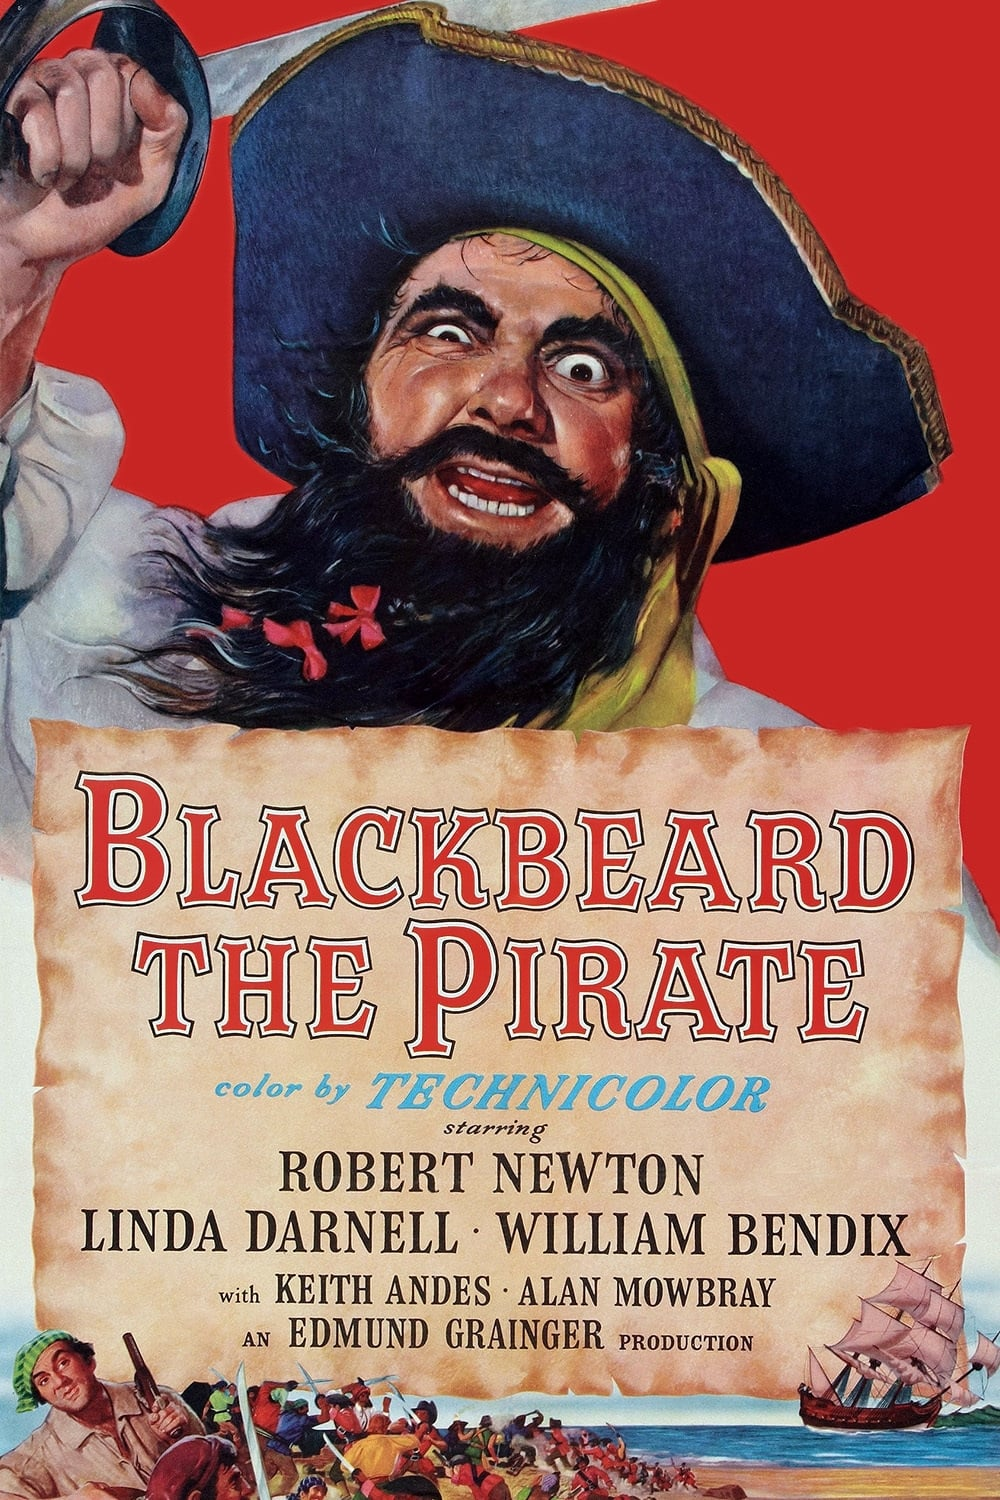 Blackbeard, the Pirate (1952)